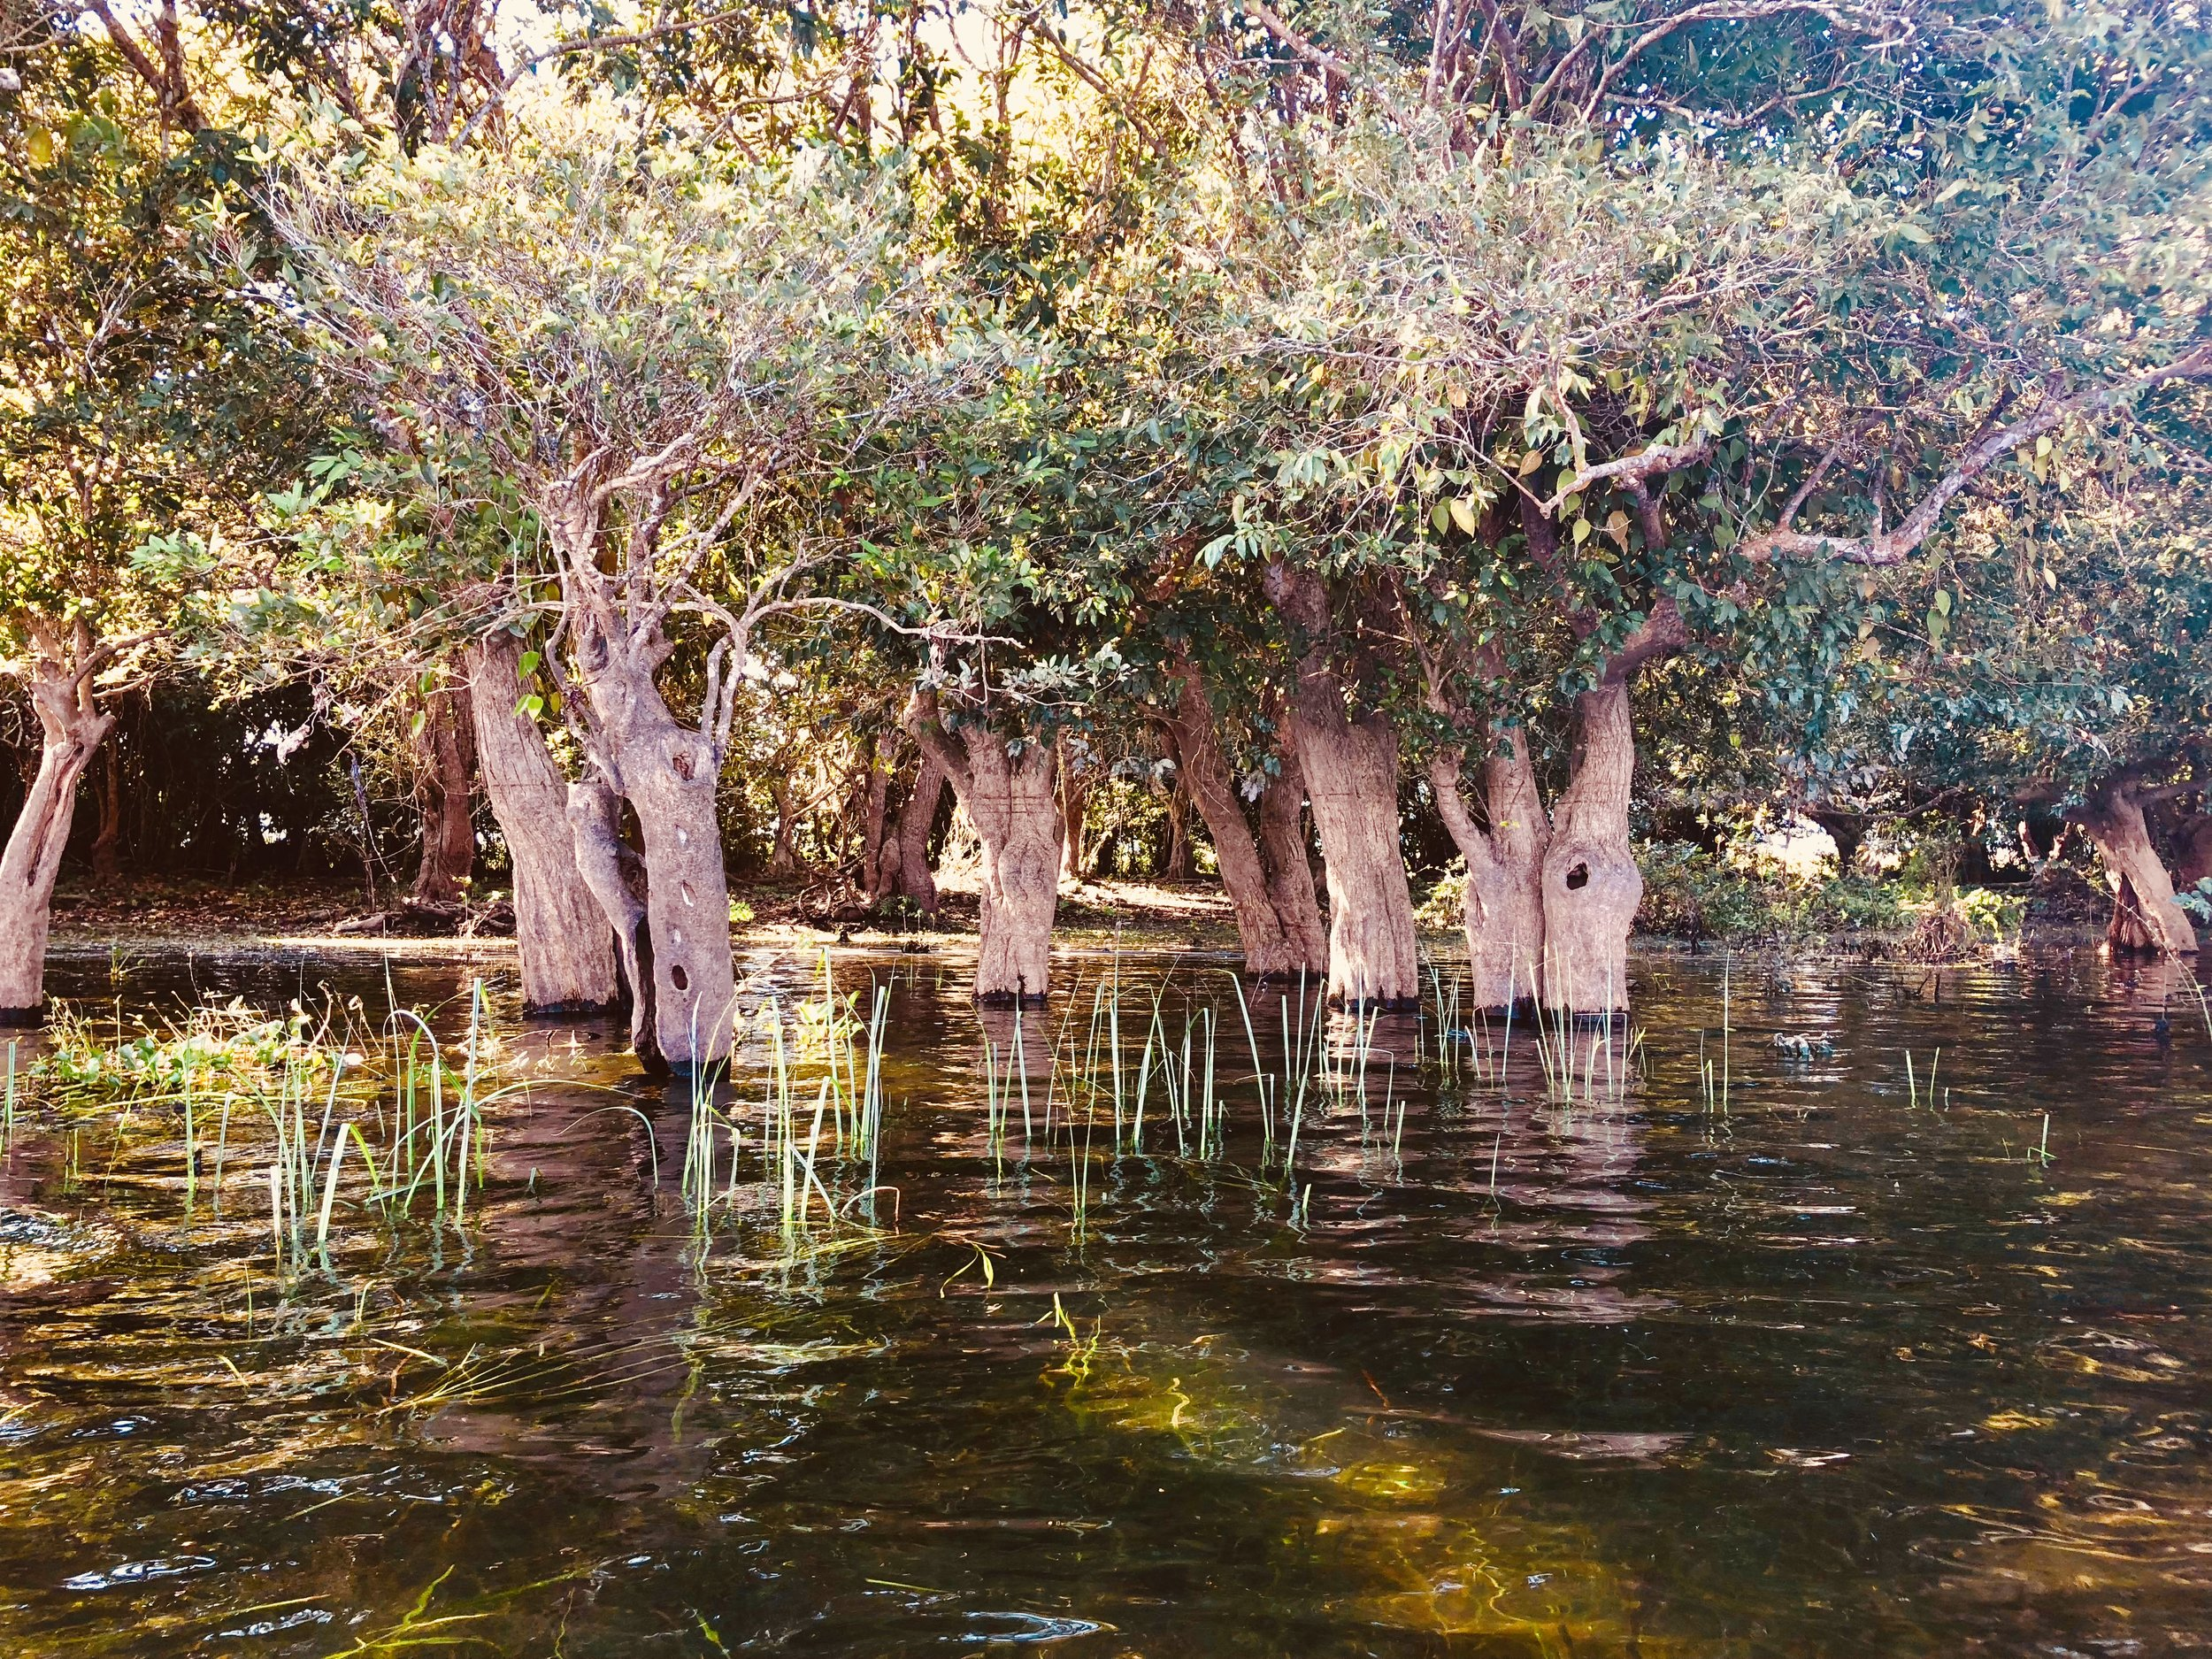 Flooded forest at the lake's perimeters